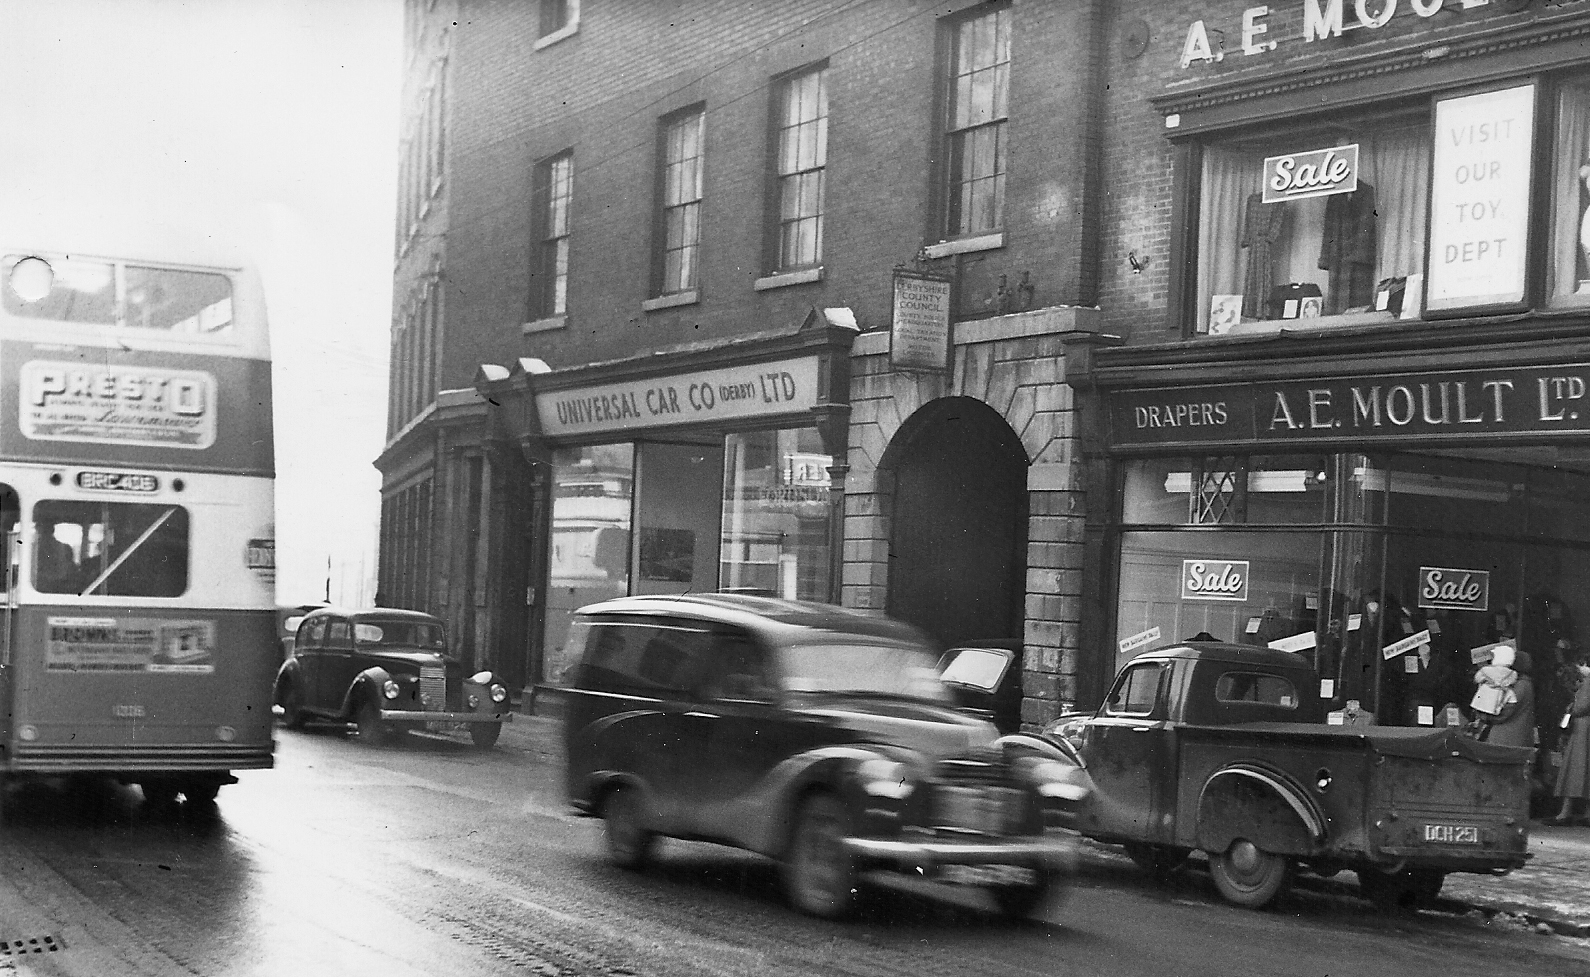 Irongate in the 1950s. Today, the area isn't so busy with traffic but still thrives as part of the Cathedral Quarter.